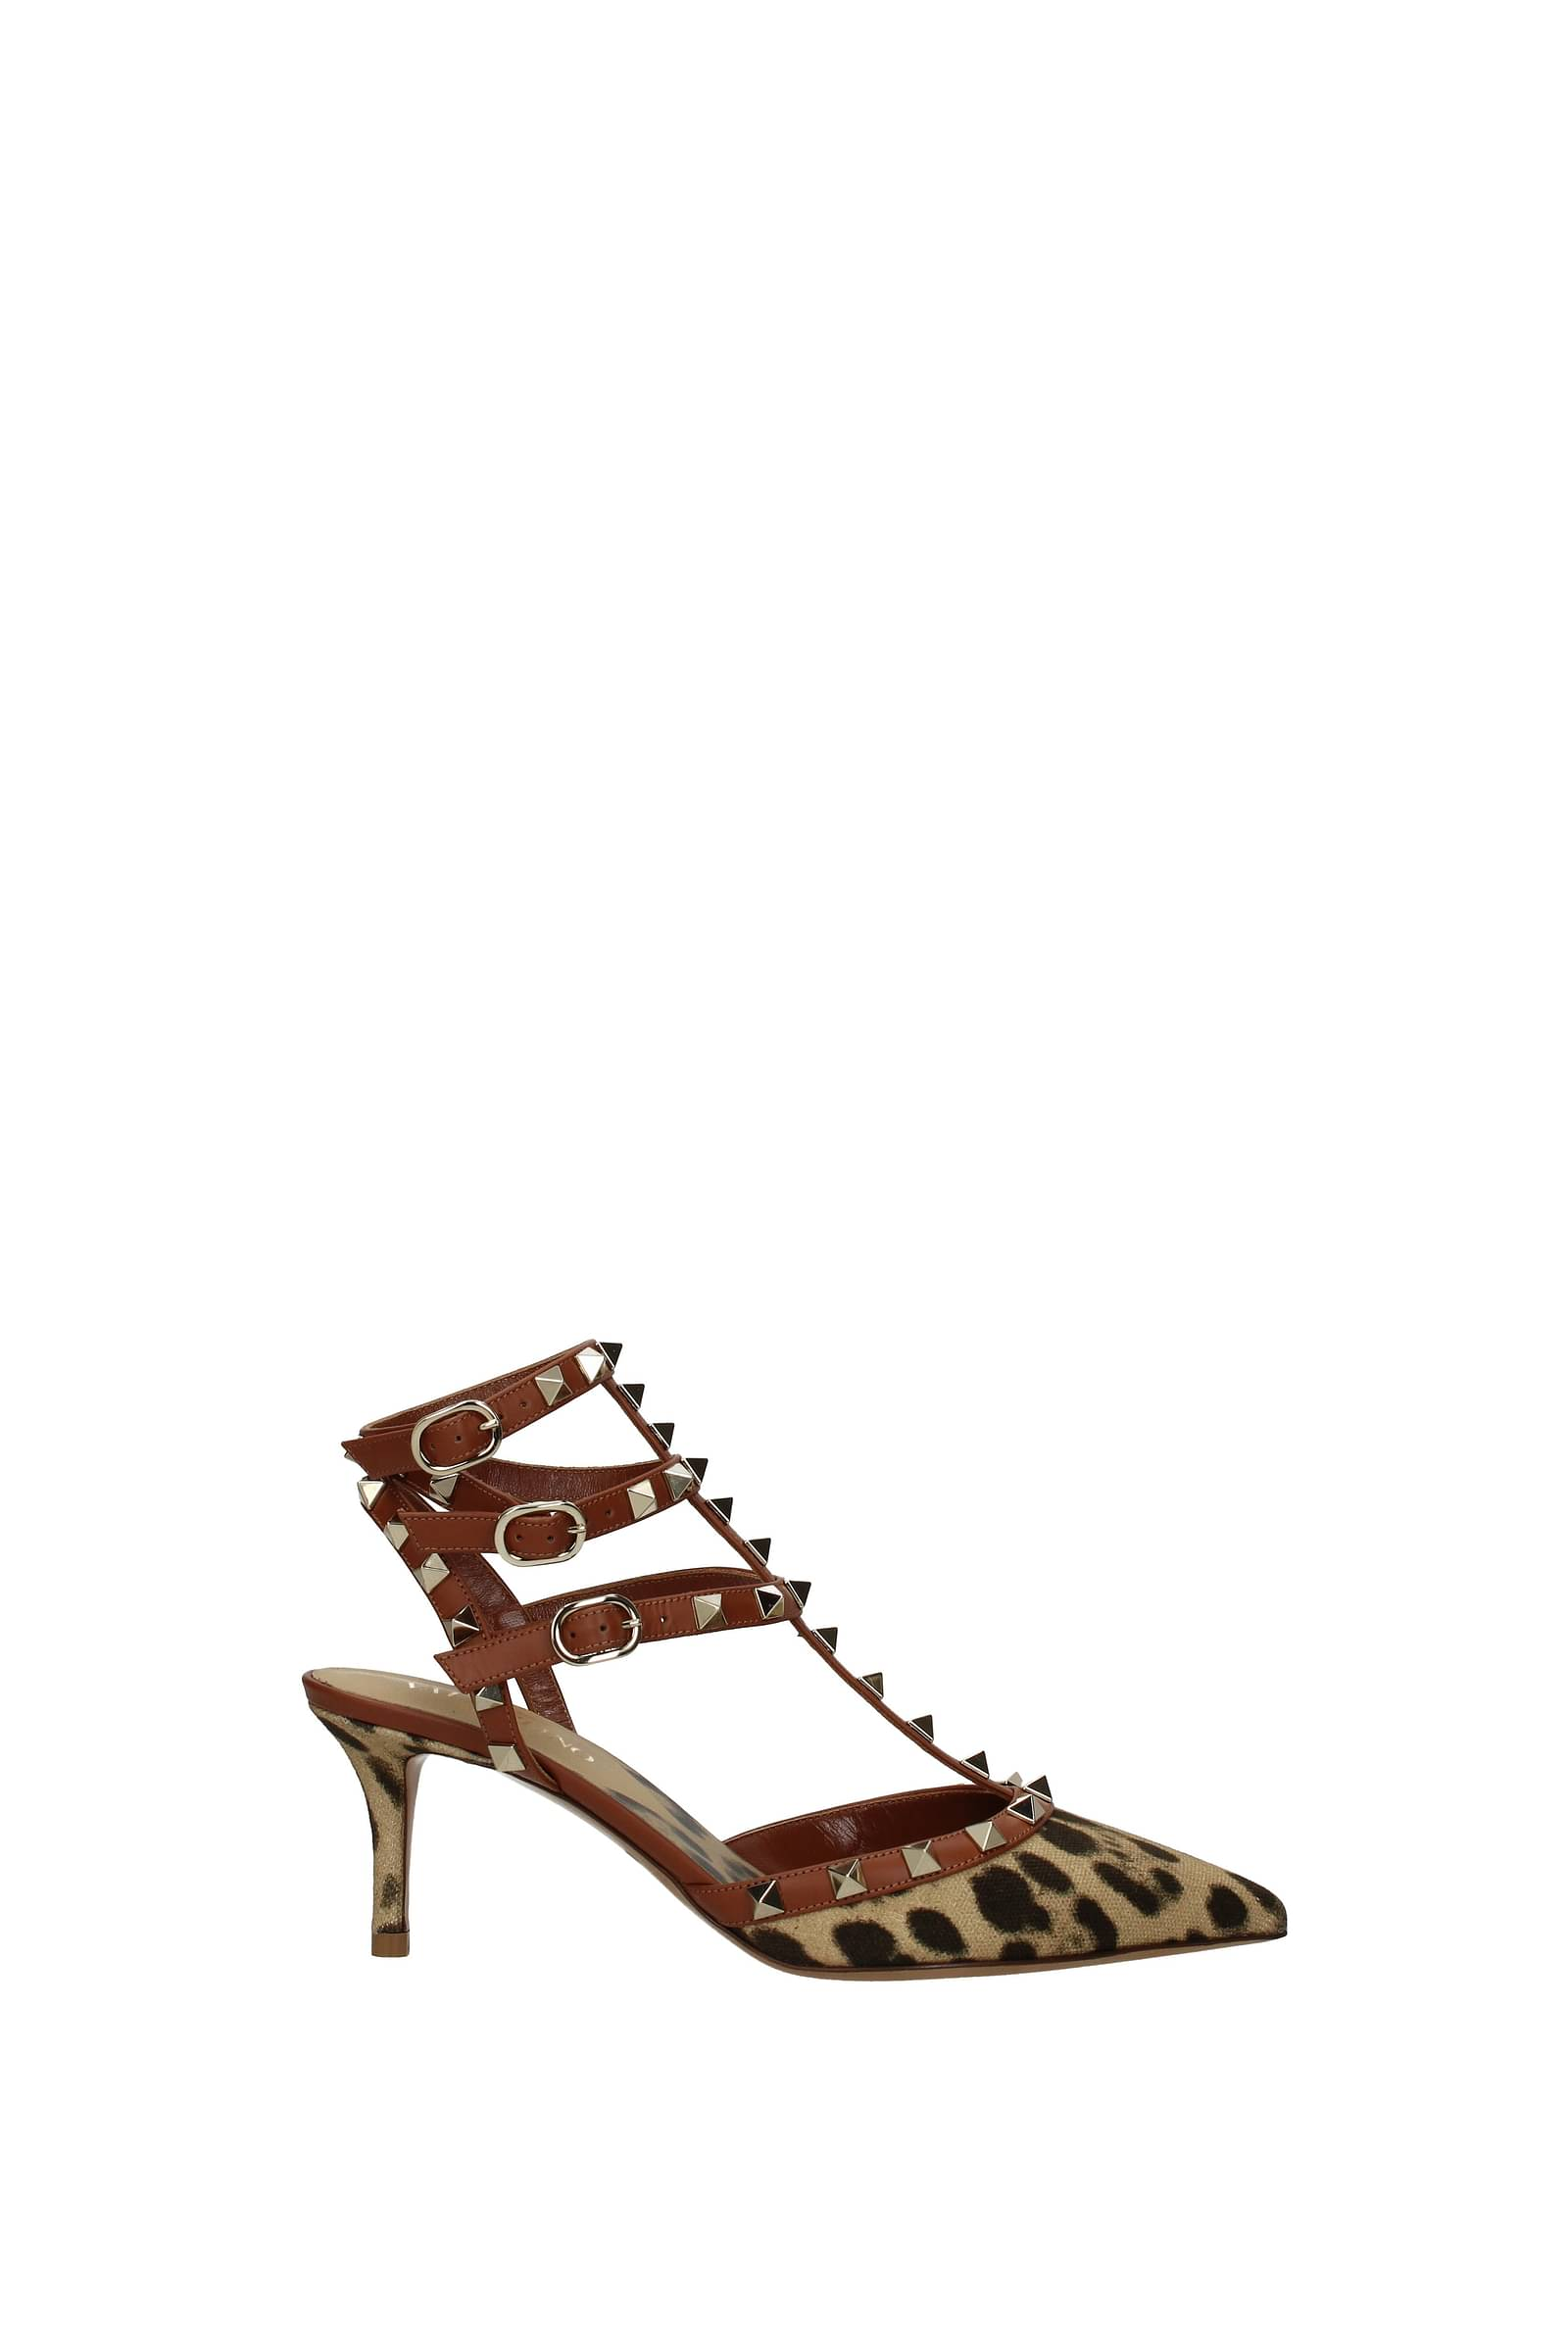 Valentino Garavani Outlet: shoes and